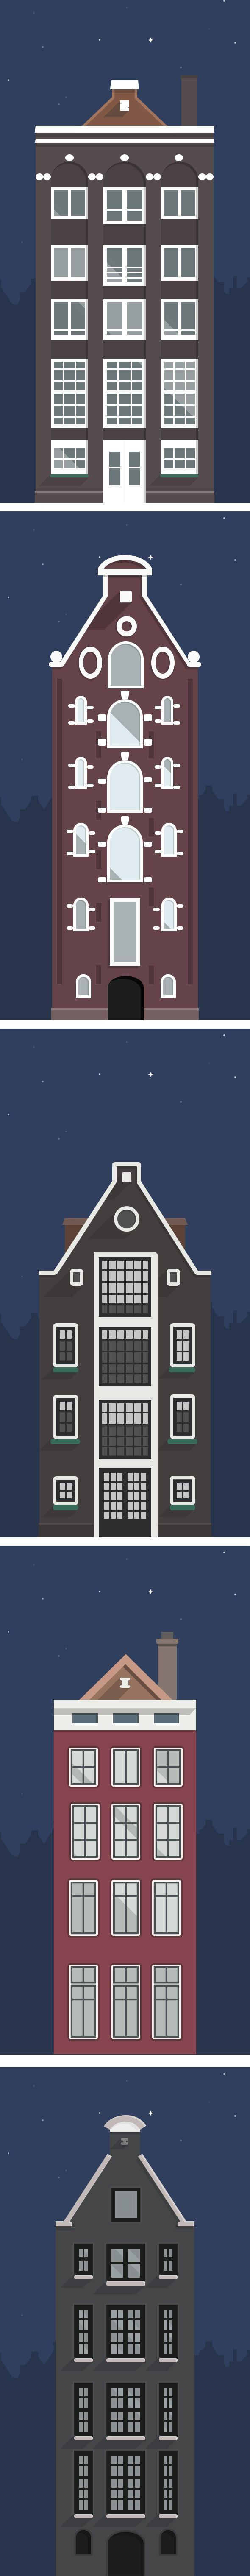 http://www.behance.net/gallery/Amsterdams-Buildings-Illustration/7327327